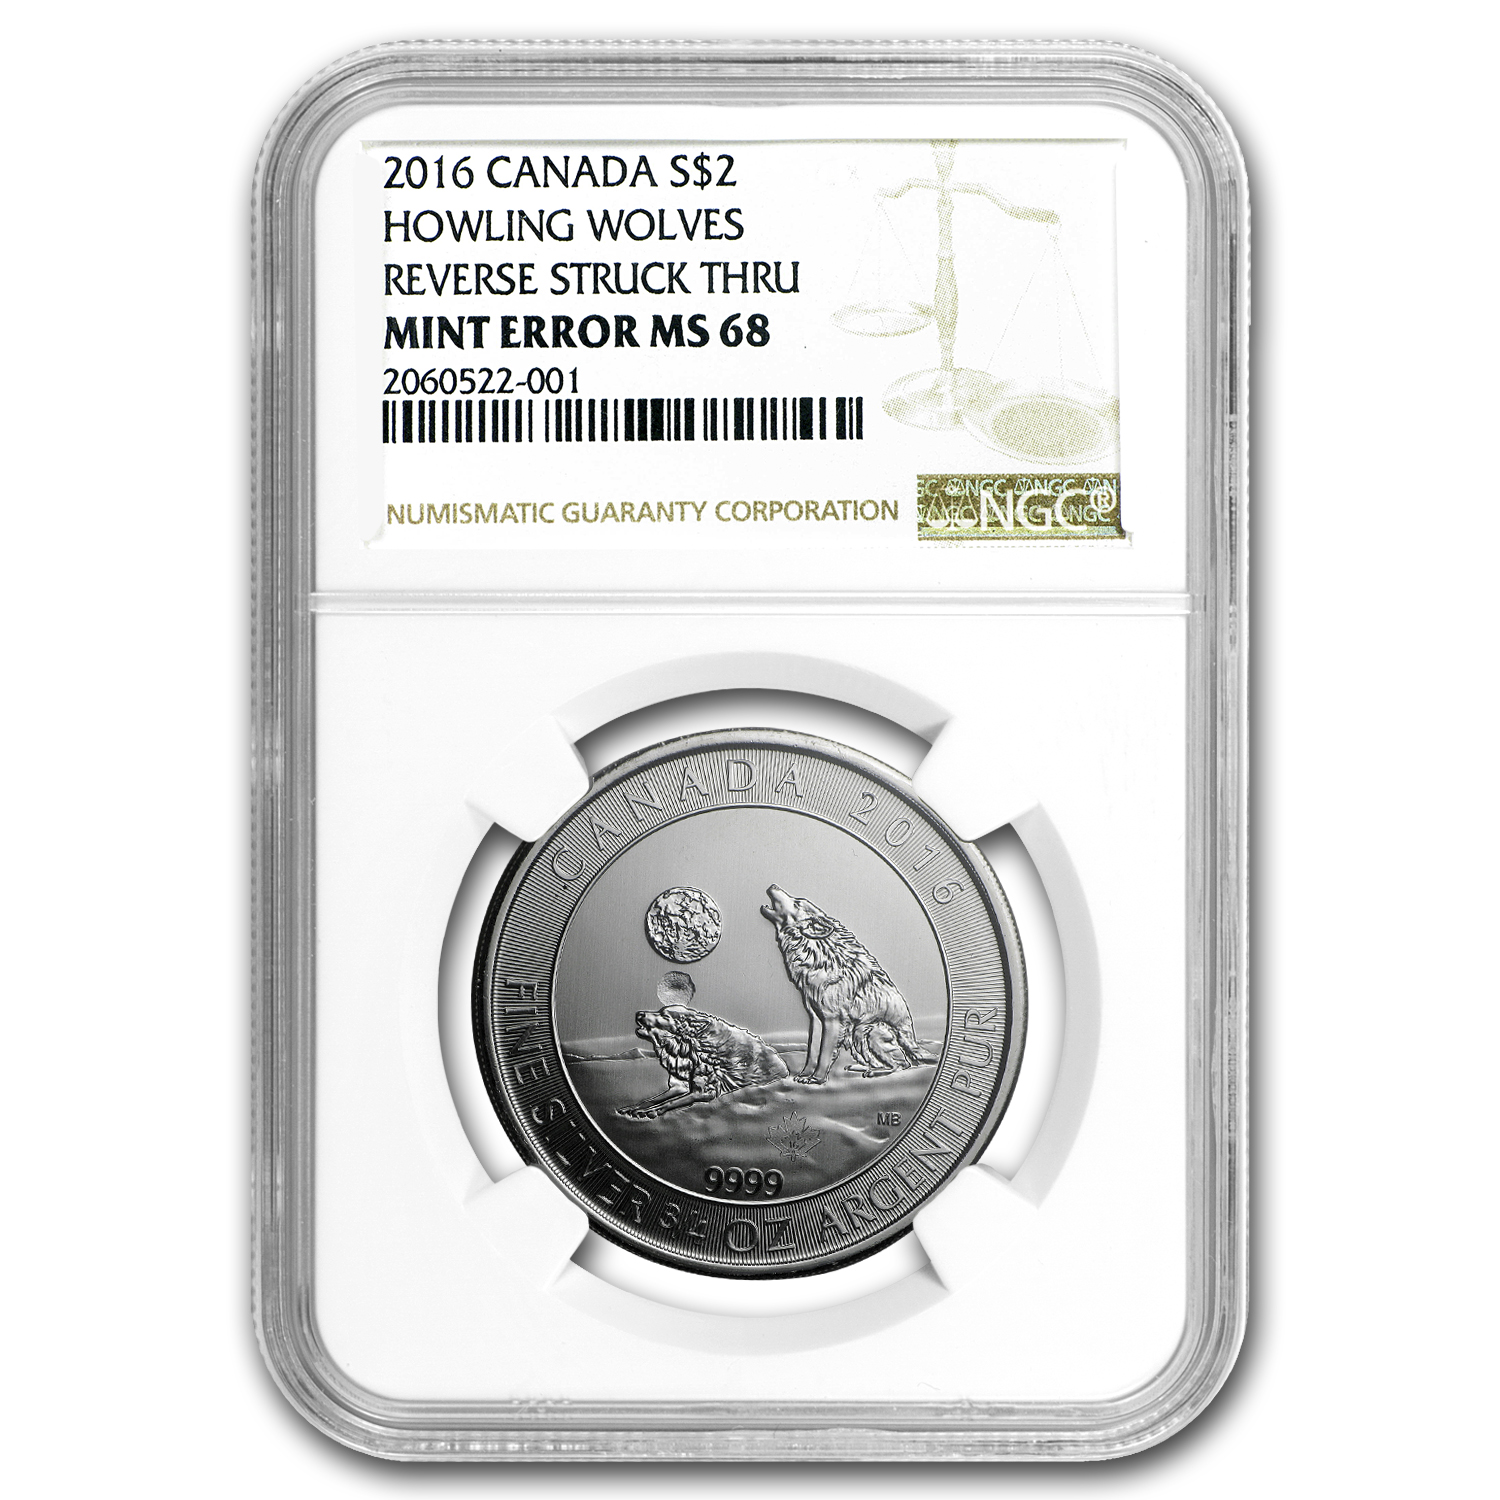 2016 Canada 3/4 oz Silver Howling Wolves MS-68 NGC (Mint Error)